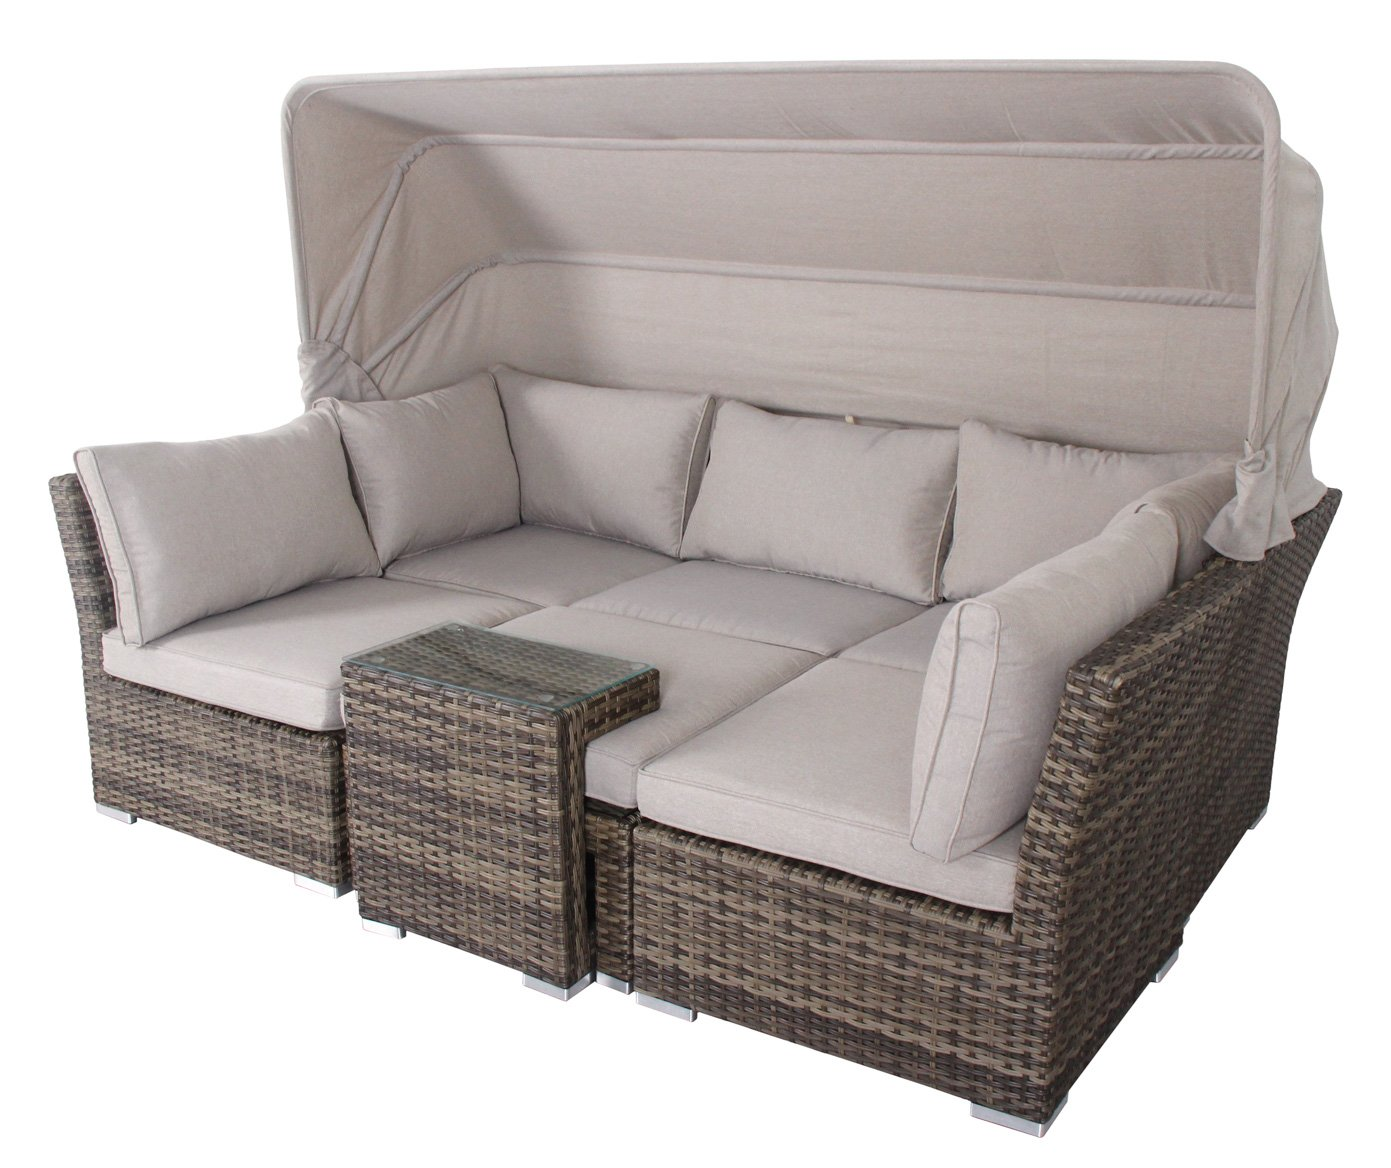 polyrattan lounge set gnstig perfect rattan lounge price per piece outdoor ikea lounger chair. Black Bedroom Furniture Sets. Home Design Ideas